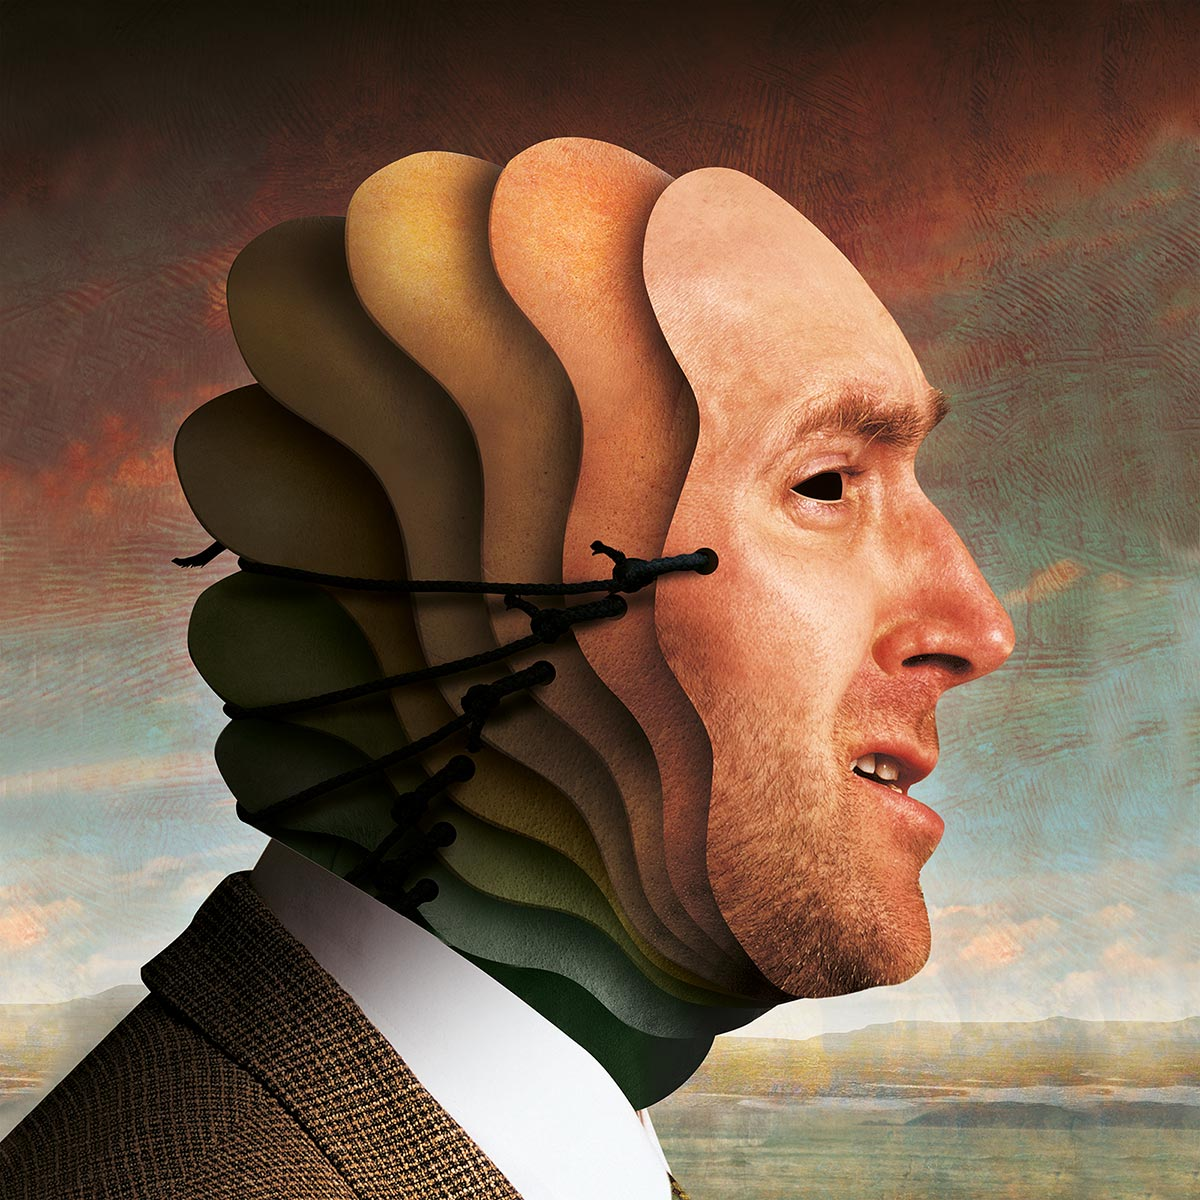 © Igor Morski | Illustration for a text on hiding true face by human. | CHARAKTERY Magazine | Poland | About 2006